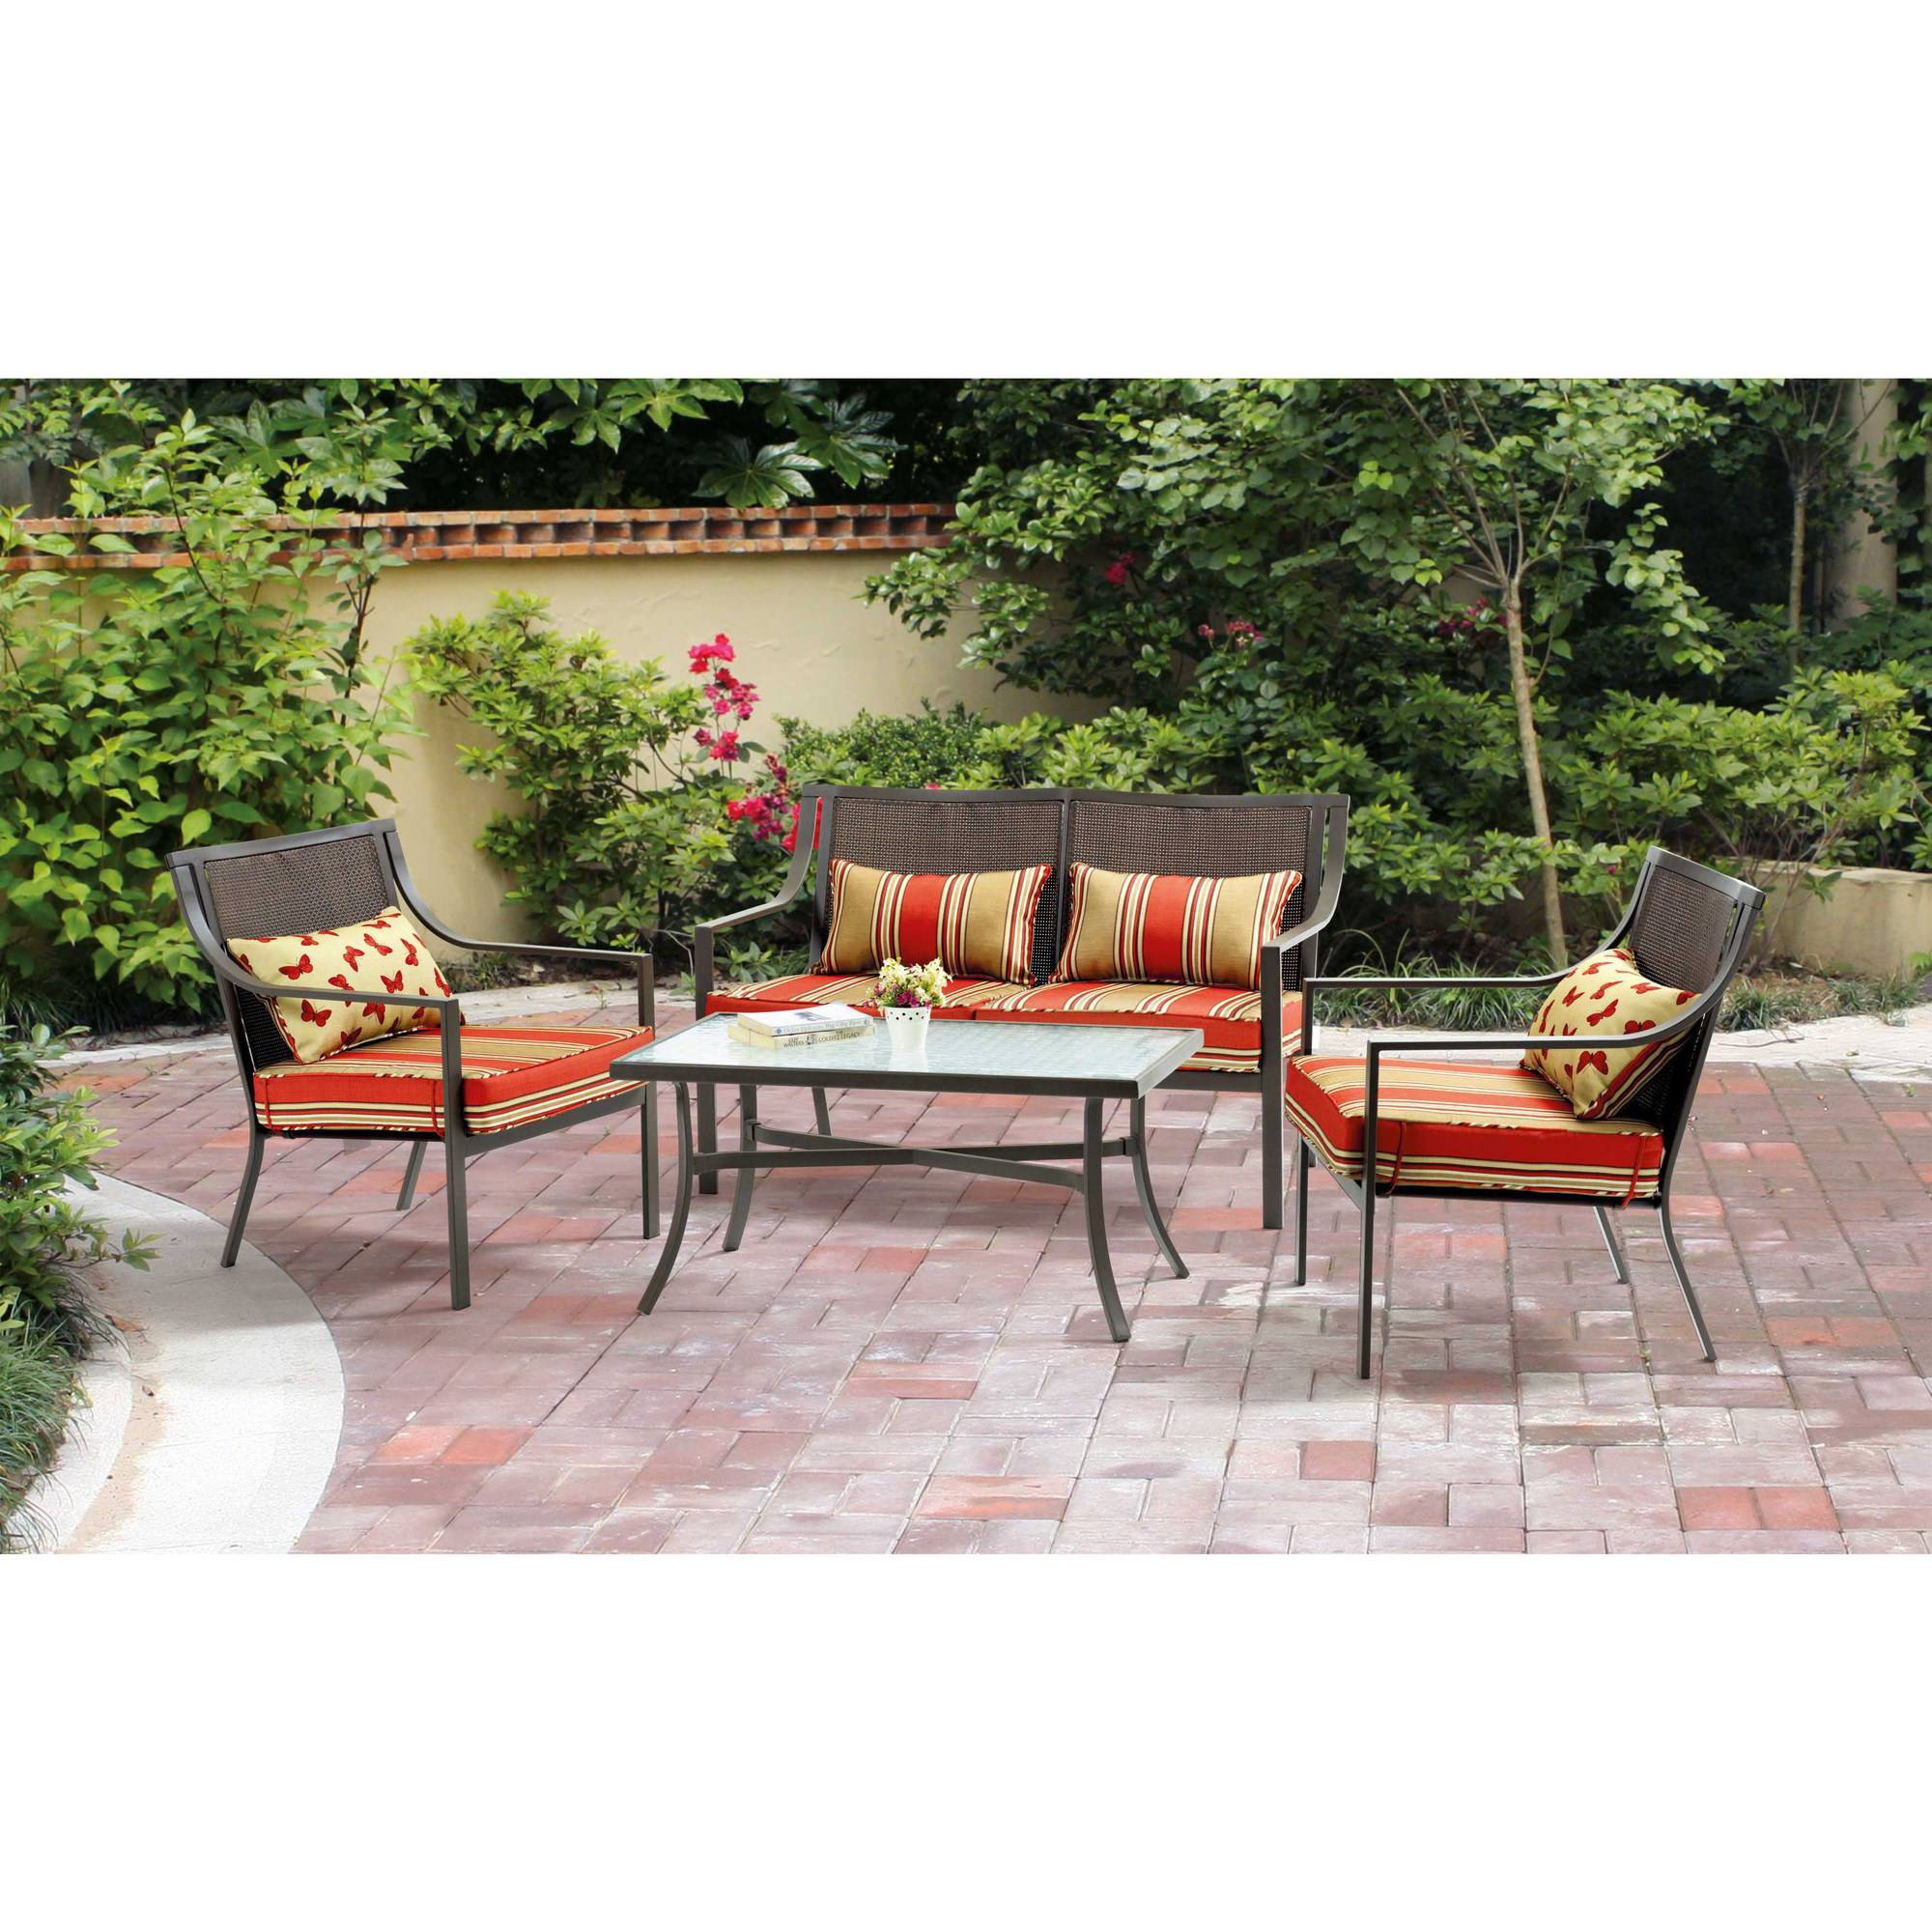 Best Choice Products Outdoor Patio Furniture Wicker 3pc Bistro Set W Gl Top Table 2 Chairs Brown